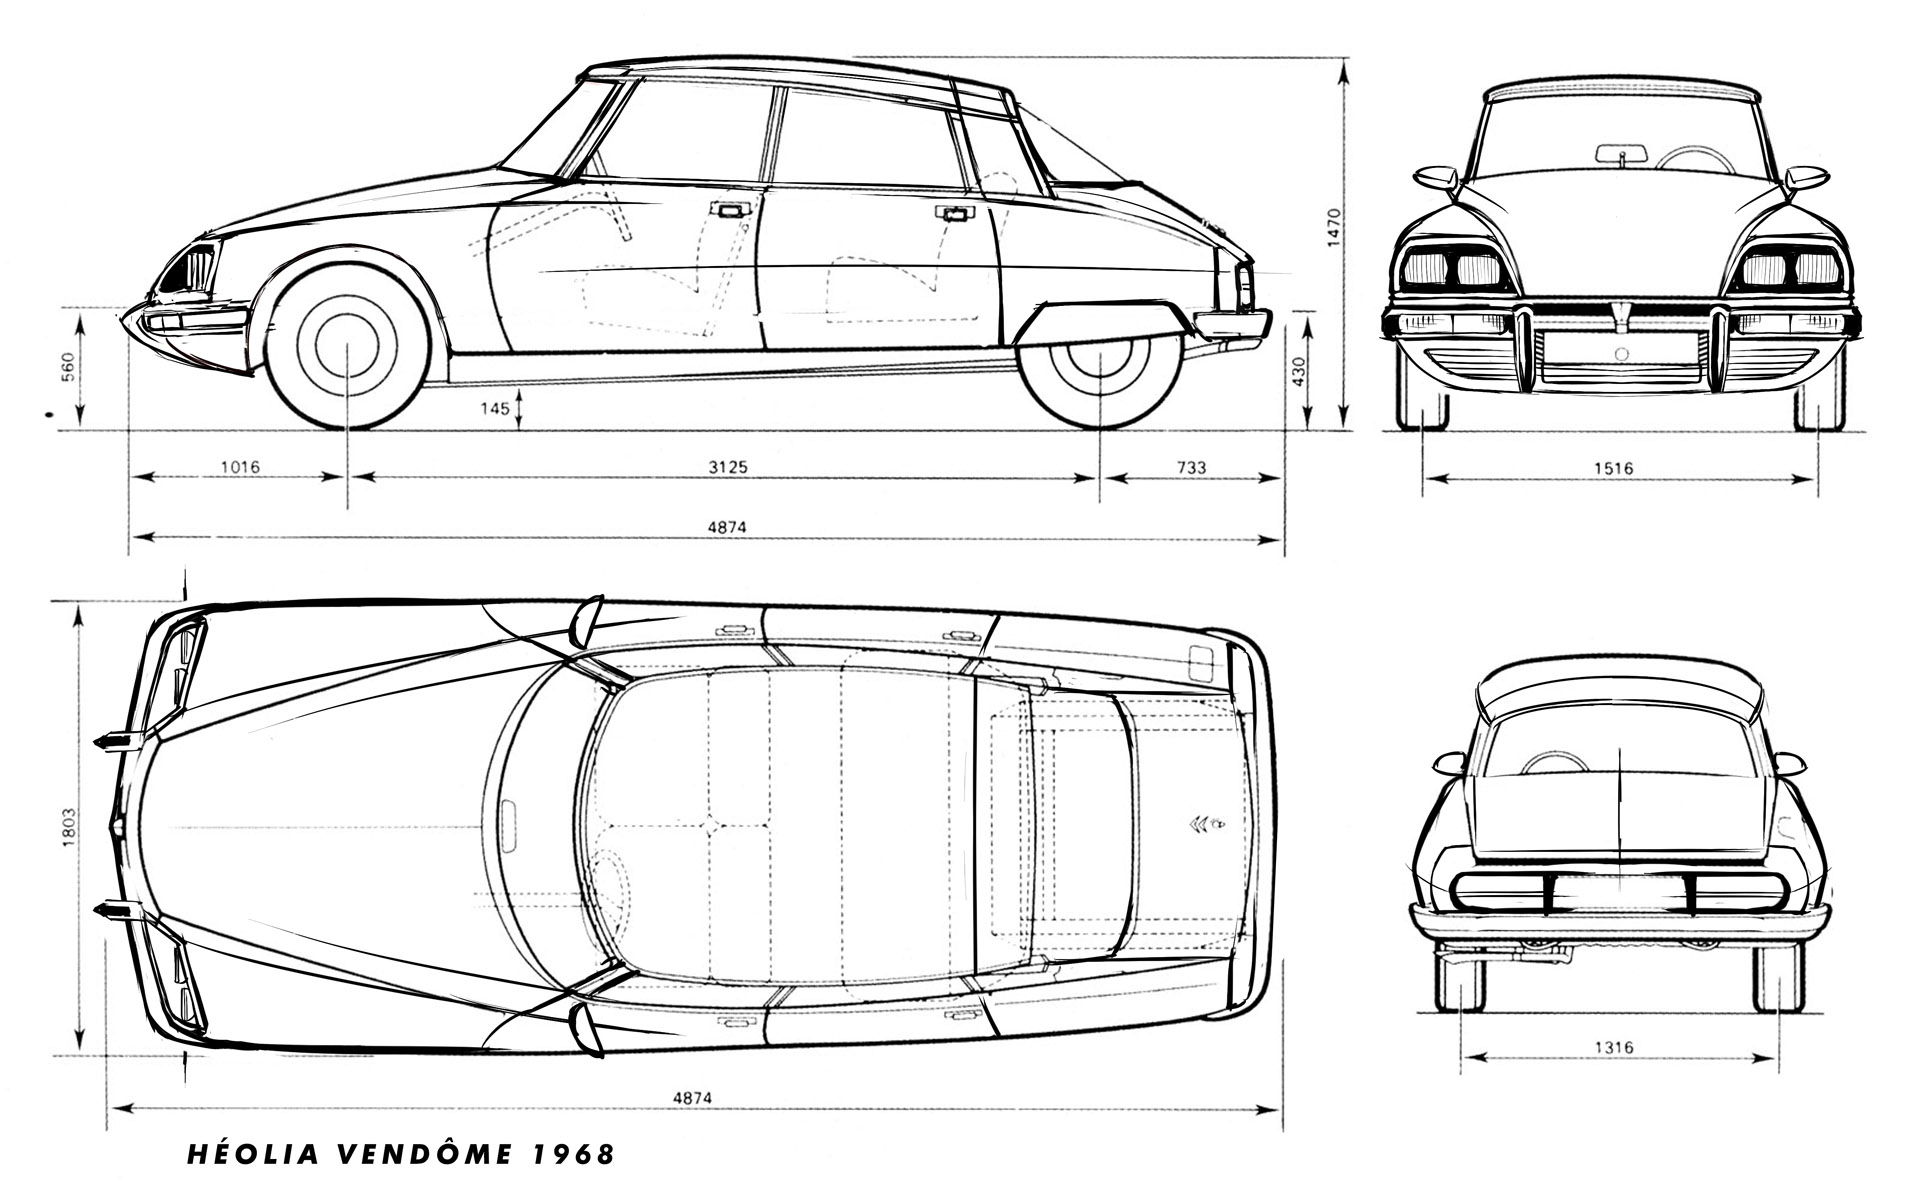 Wip heolia vendome page 13 beamng rear and front are not real blueprint views but as this is a fictional car i had room left to improvisation that is appreciable comparing to malvernweather Gallery